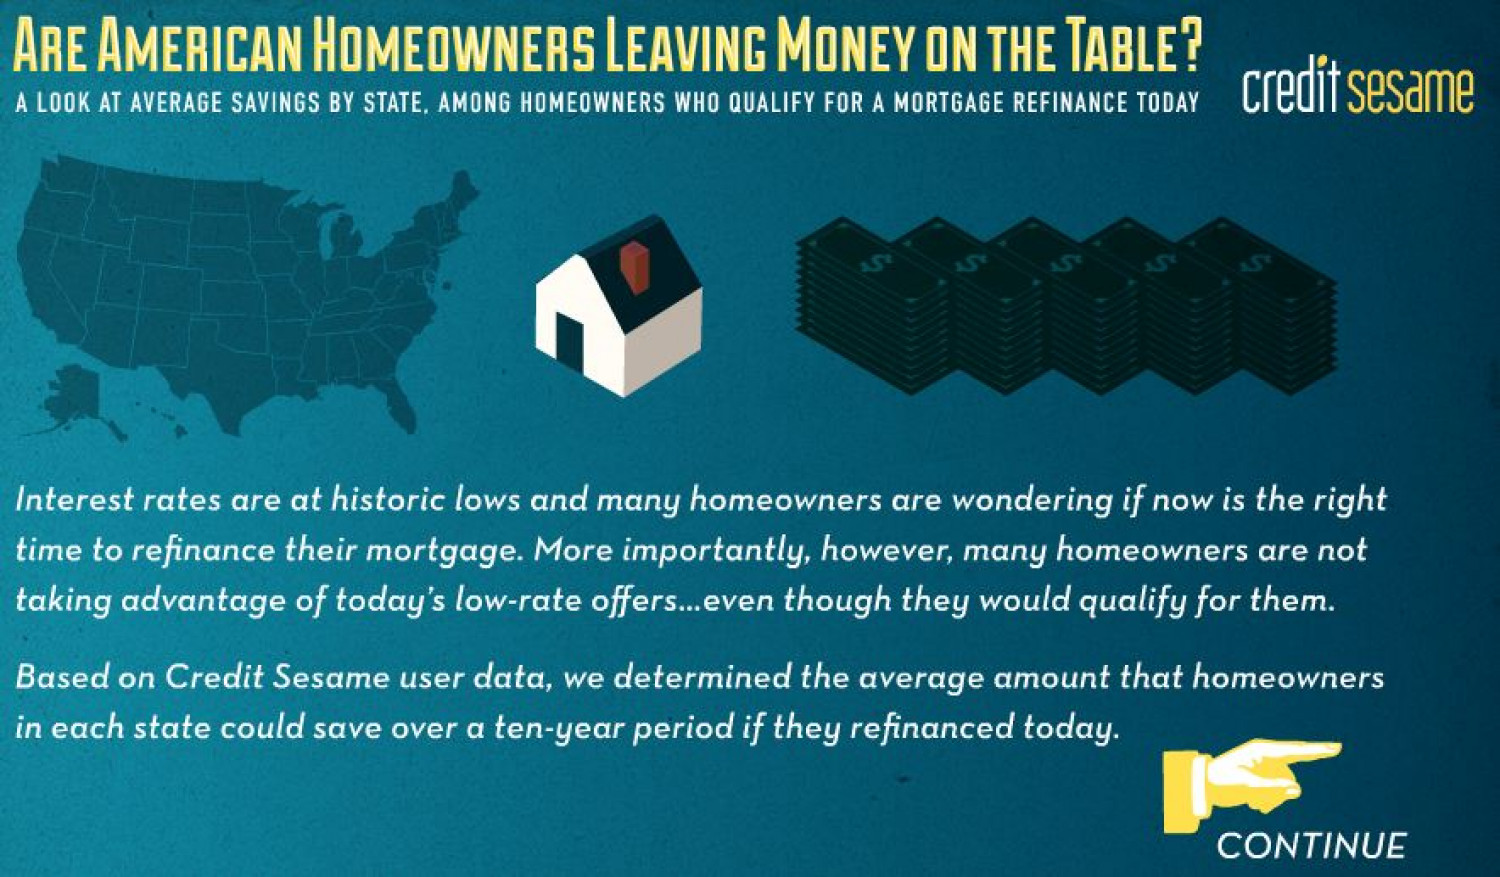 Are Home Owners Leaving Money On The Table? Infographic